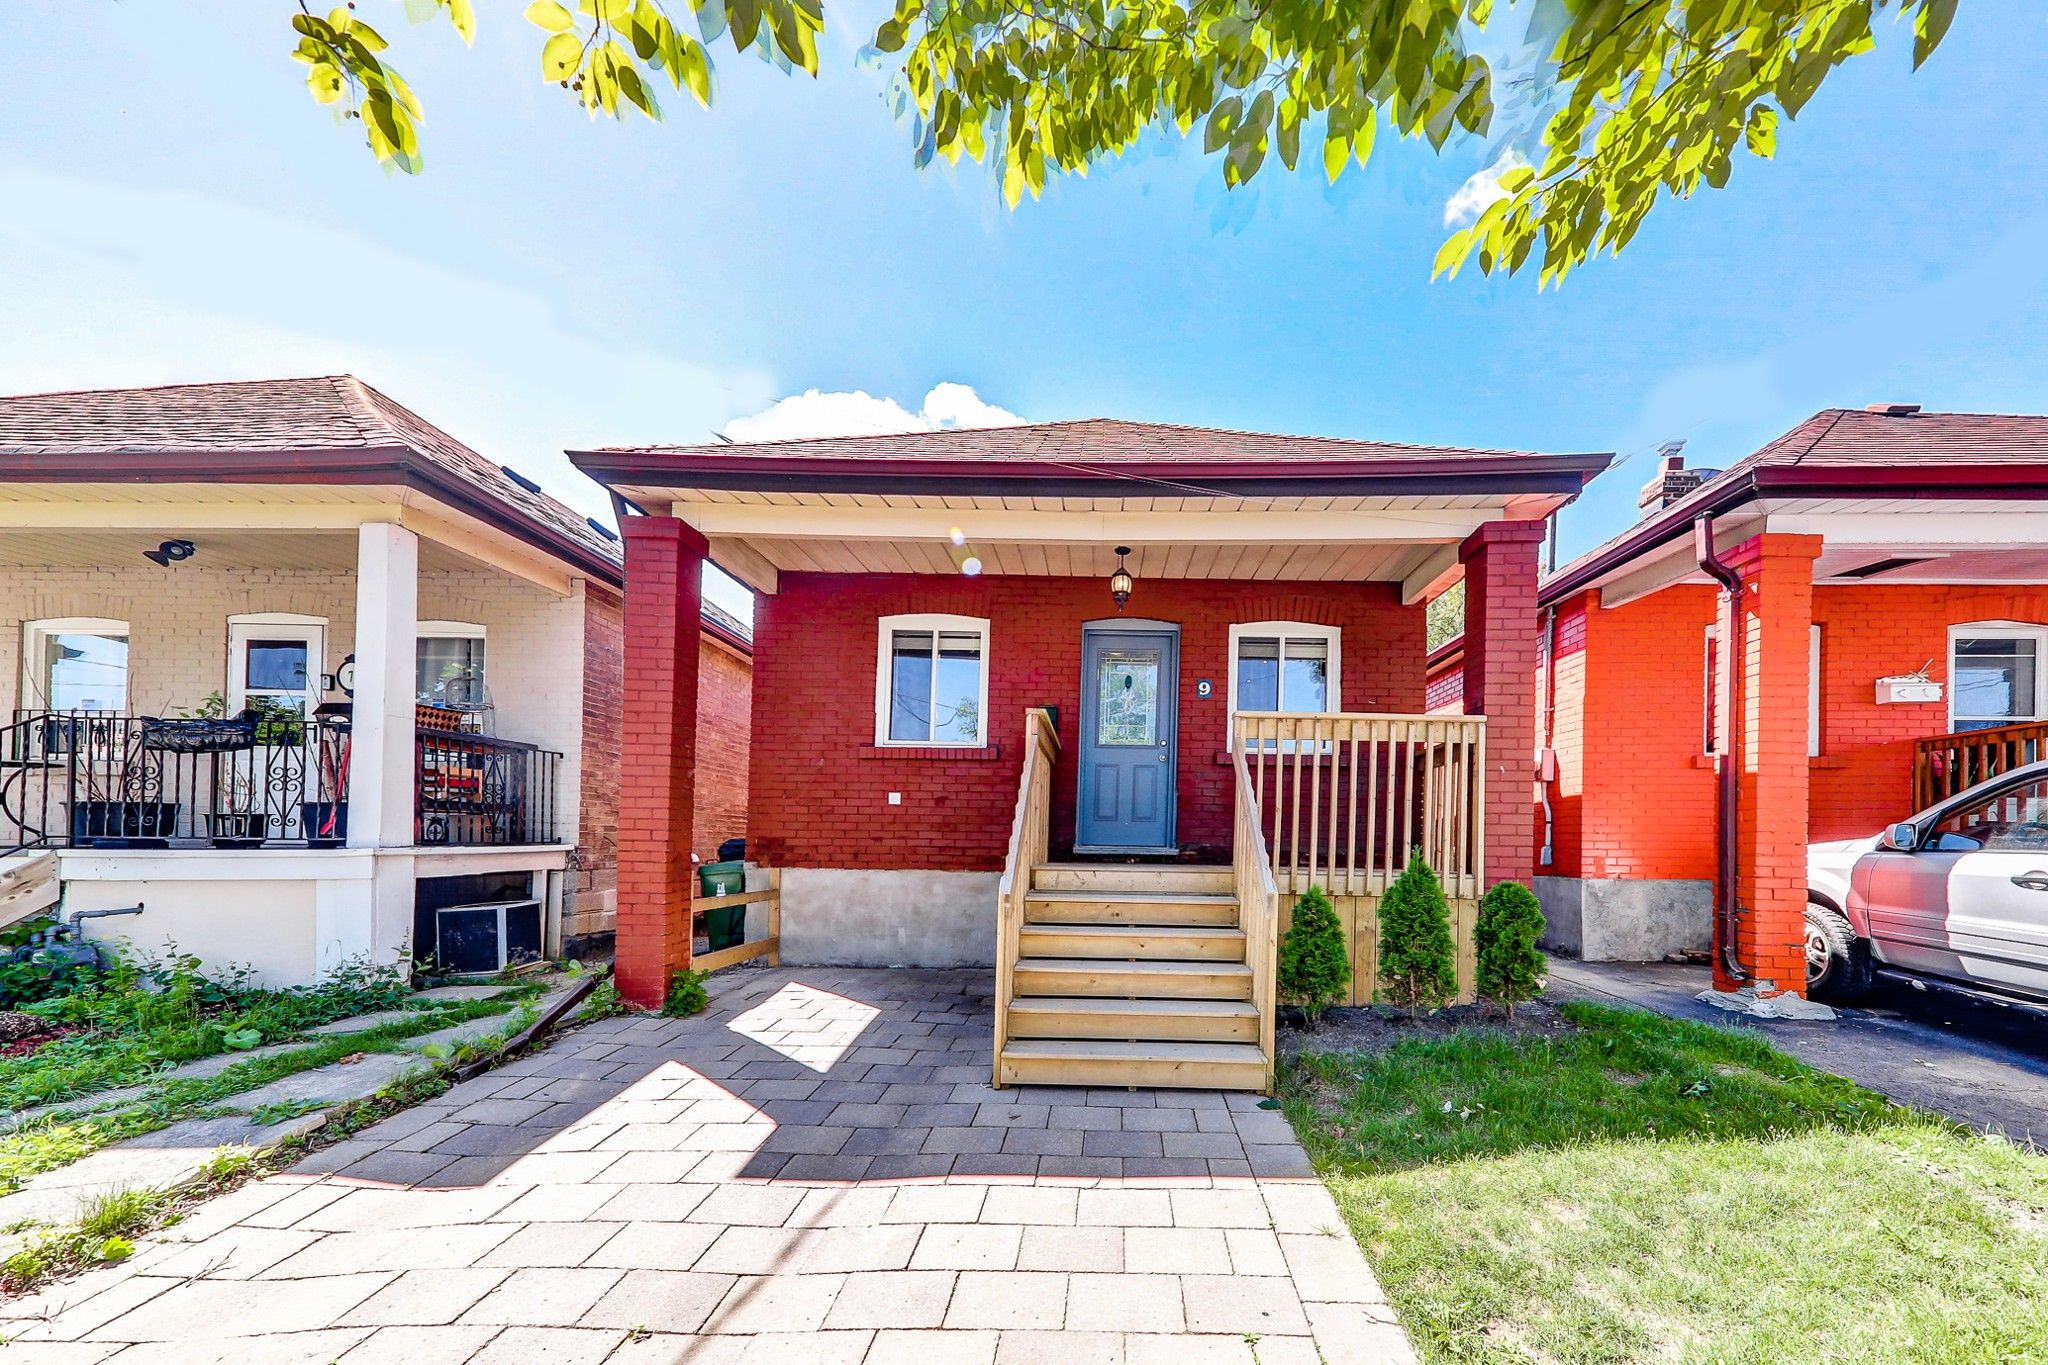 Main Photo: 9 Maple Bush Avenue in Toronto: Humberlea-Pelmo Park W4 House (Bungalow) for sale (Toronto W04)  : MLS®# W4180095